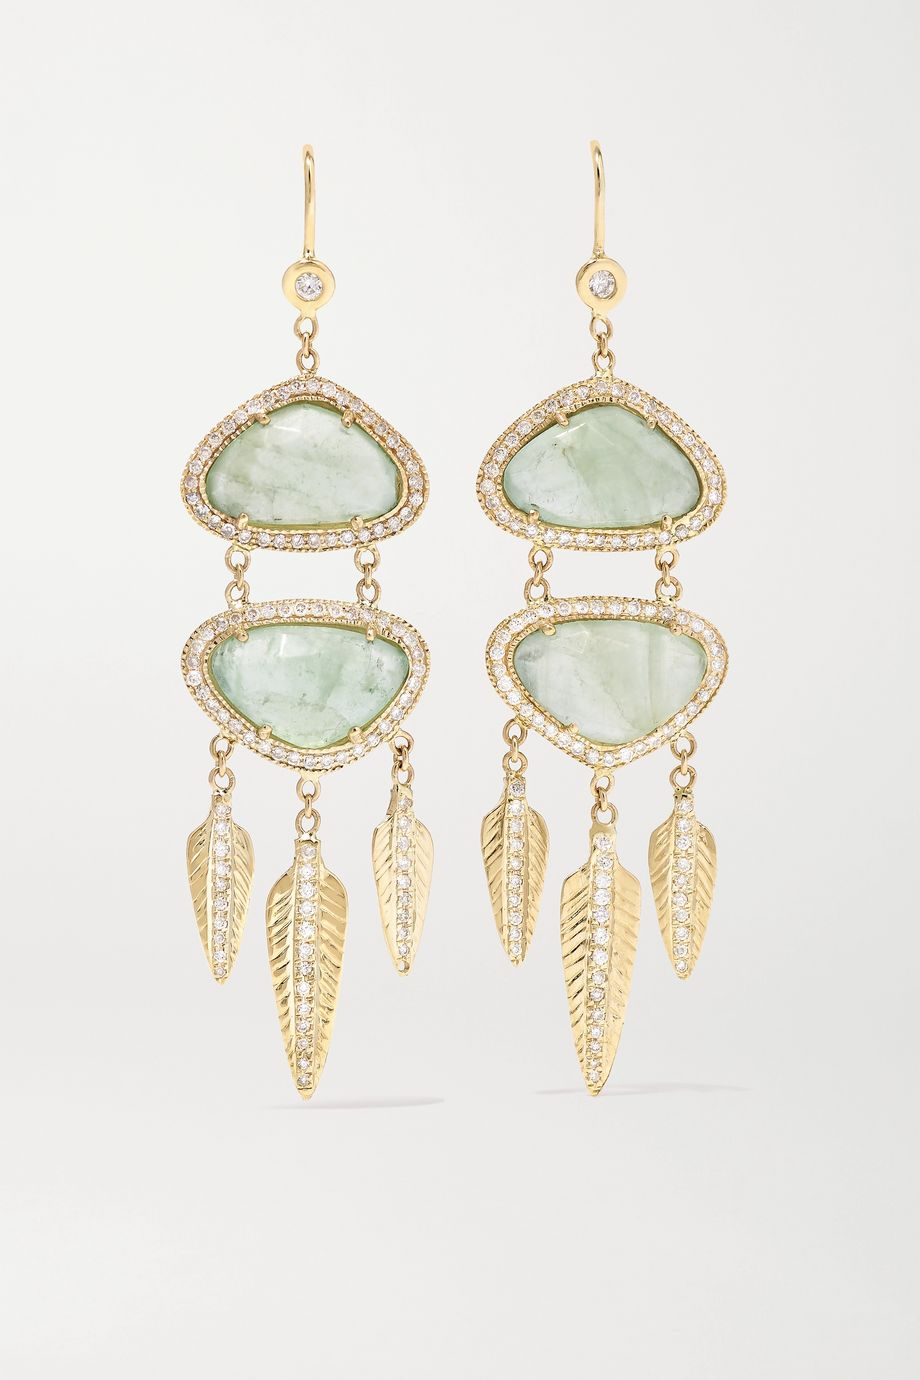 Jacquie Aiche 14-karat gold, calcite and diamond earrings